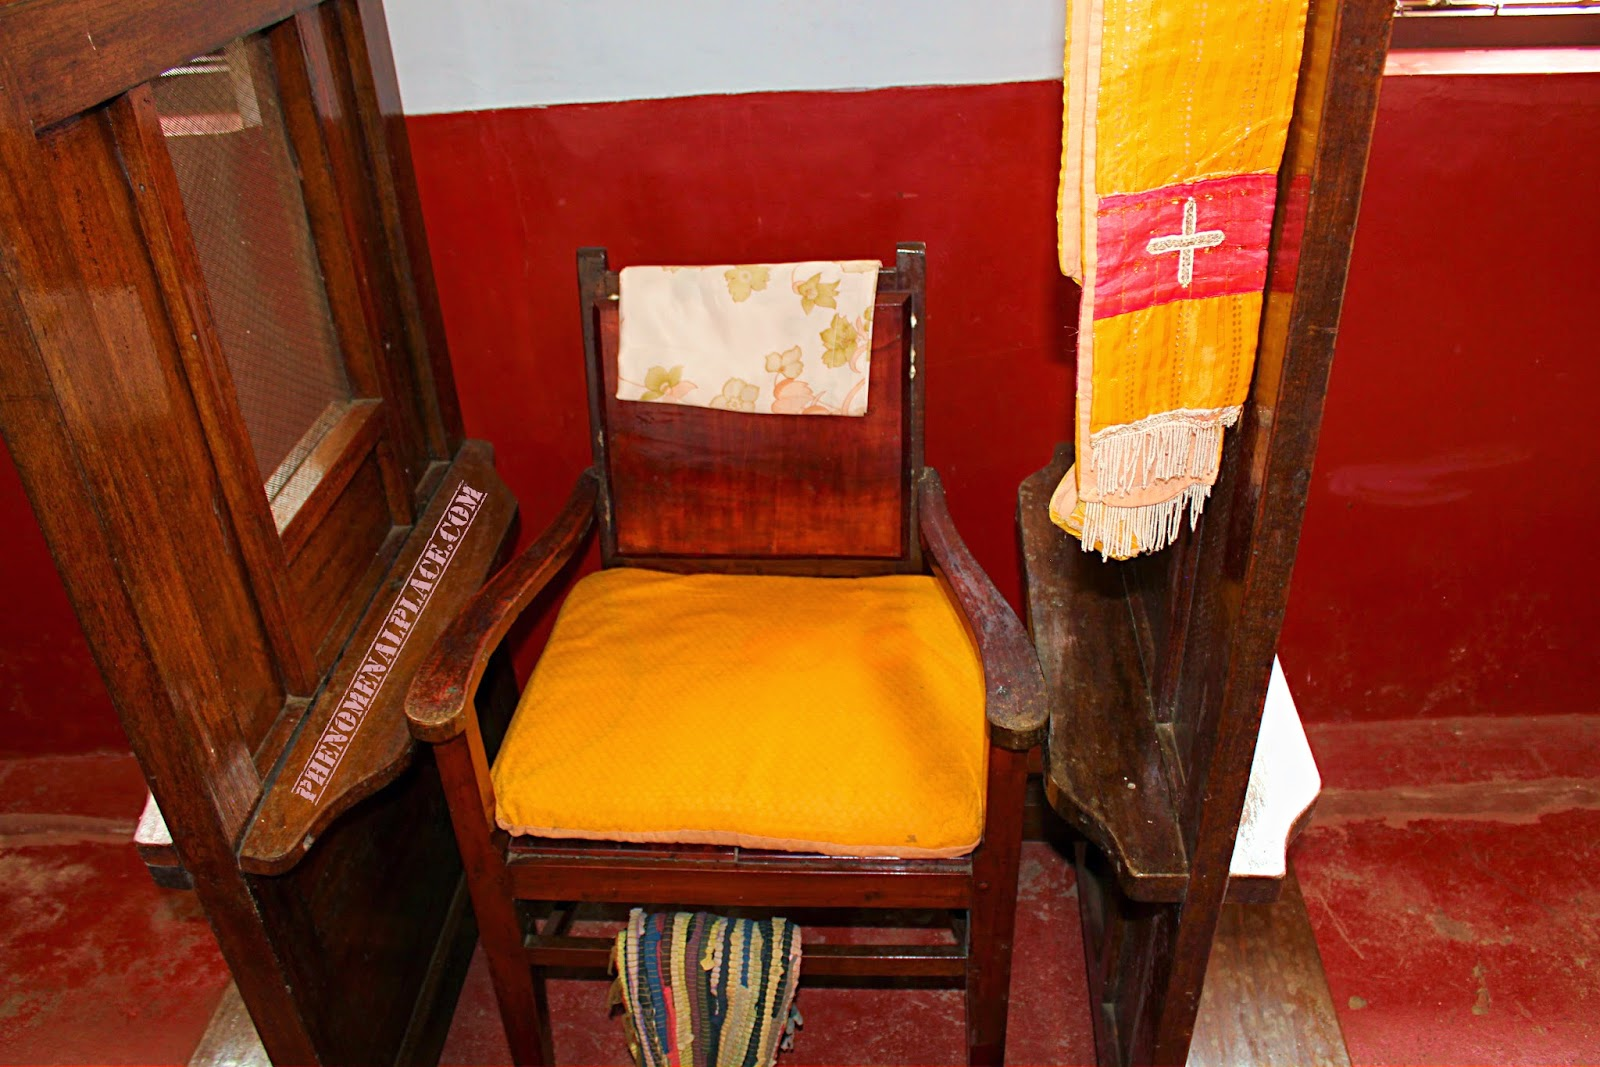 old fashioned birthing chairs chic chair covers birmingham chavara bhavan in aleppey alappuzha kerala india